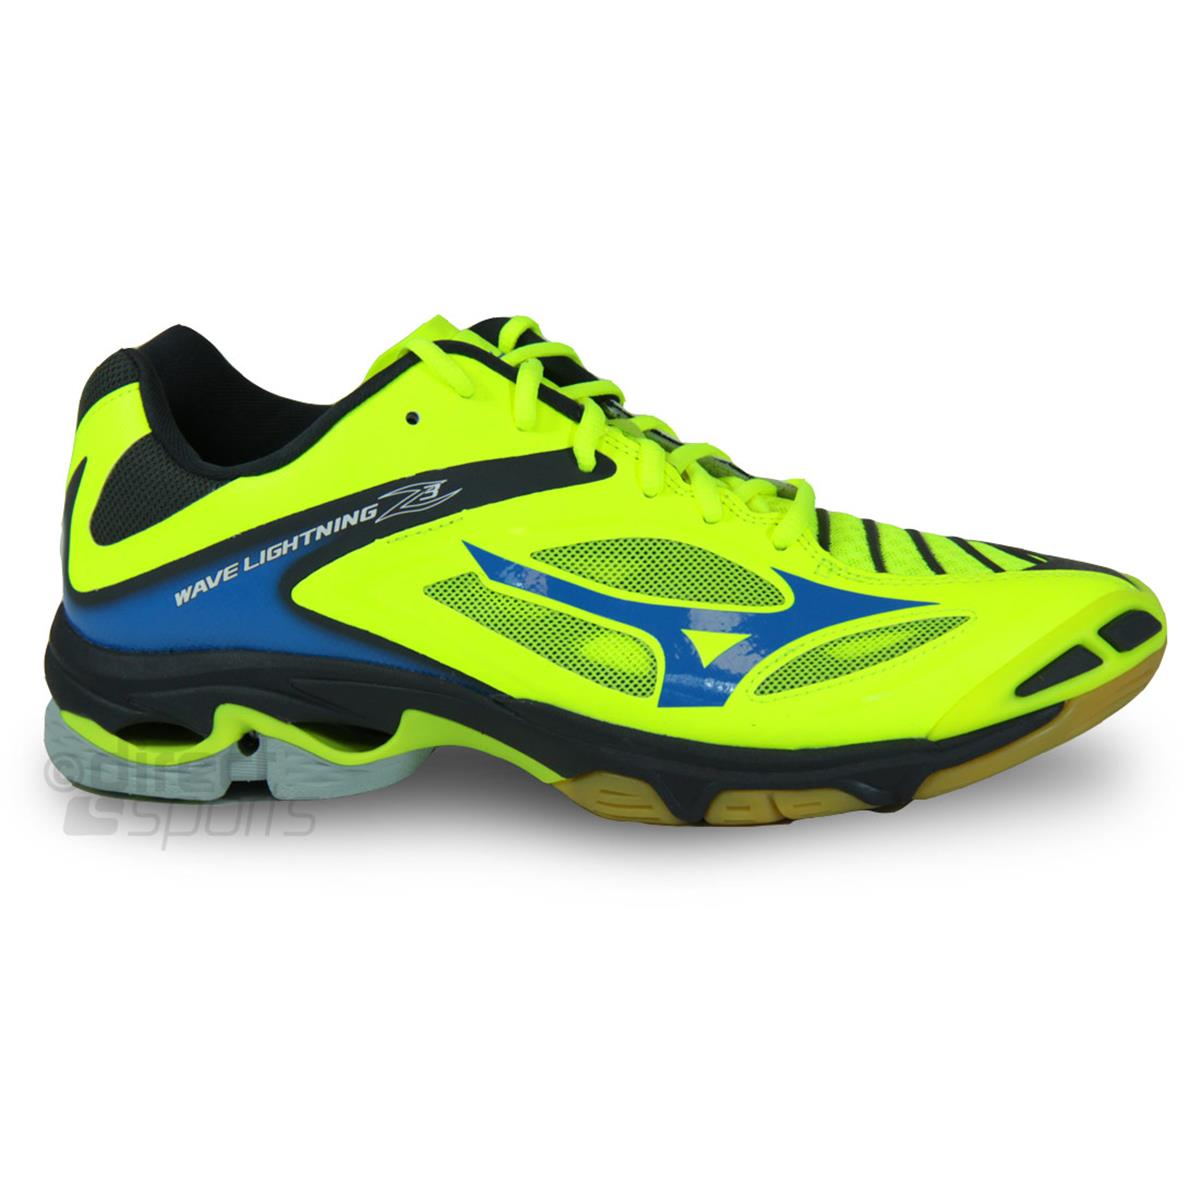 178a615721237 Mizuno Wave Lightning Z3 Mens Court Shoes (Safety Yellow-Dark Shadow)